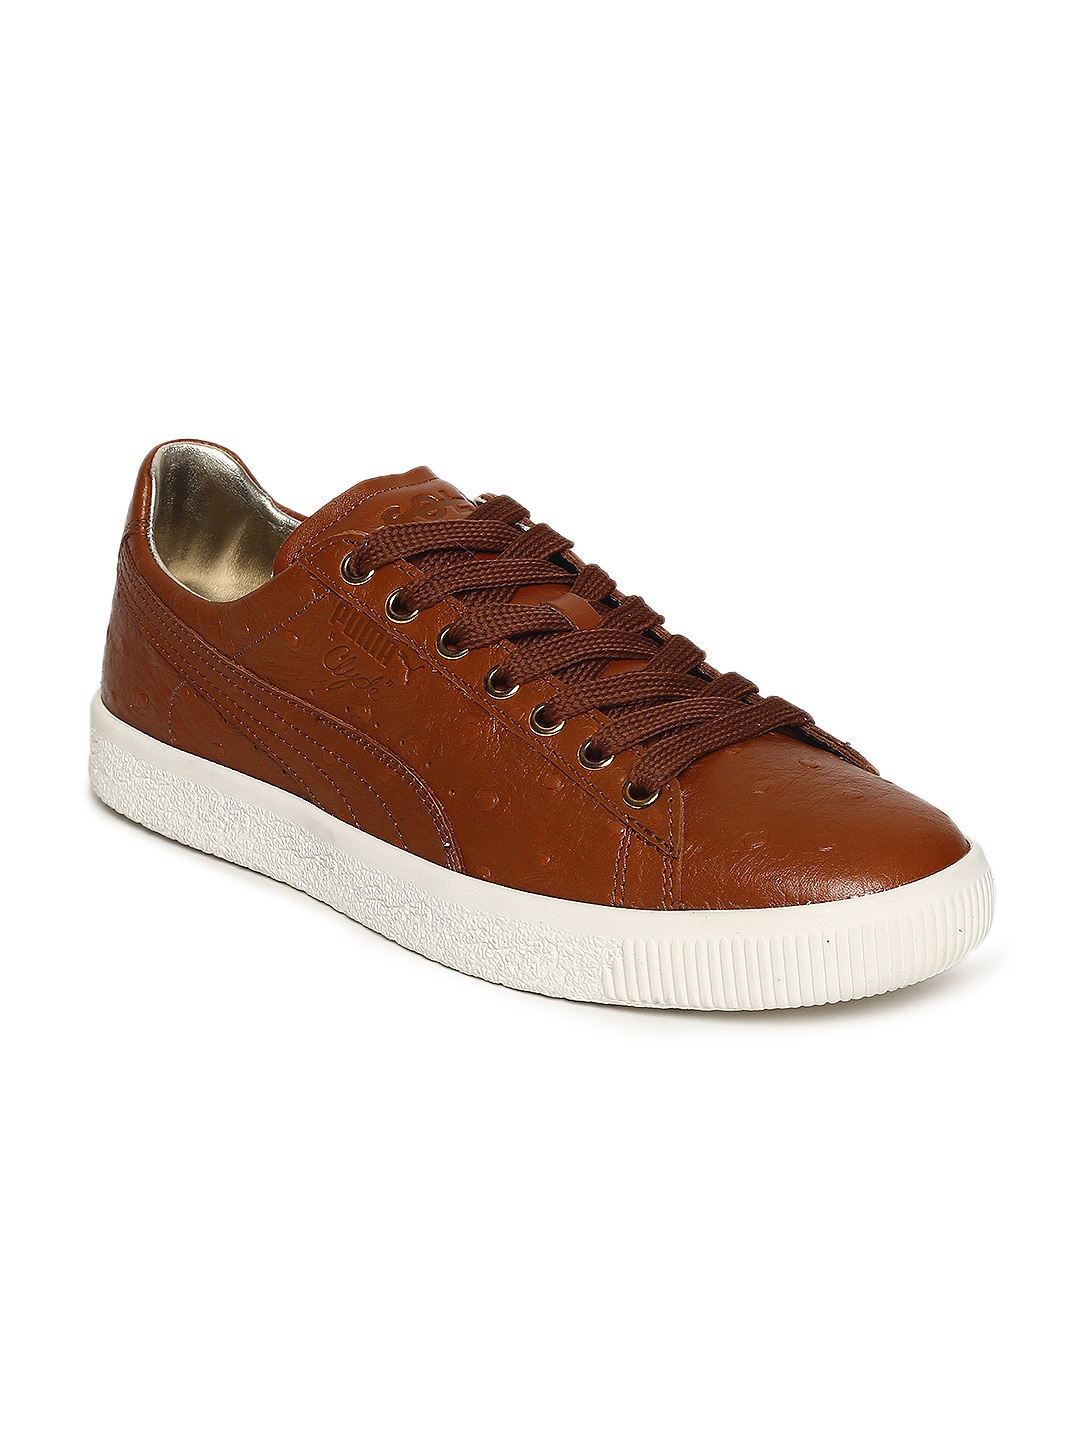 c5026beda8b8ab Puma Brown Shoes - Buy Puma Brown Shoes online in India